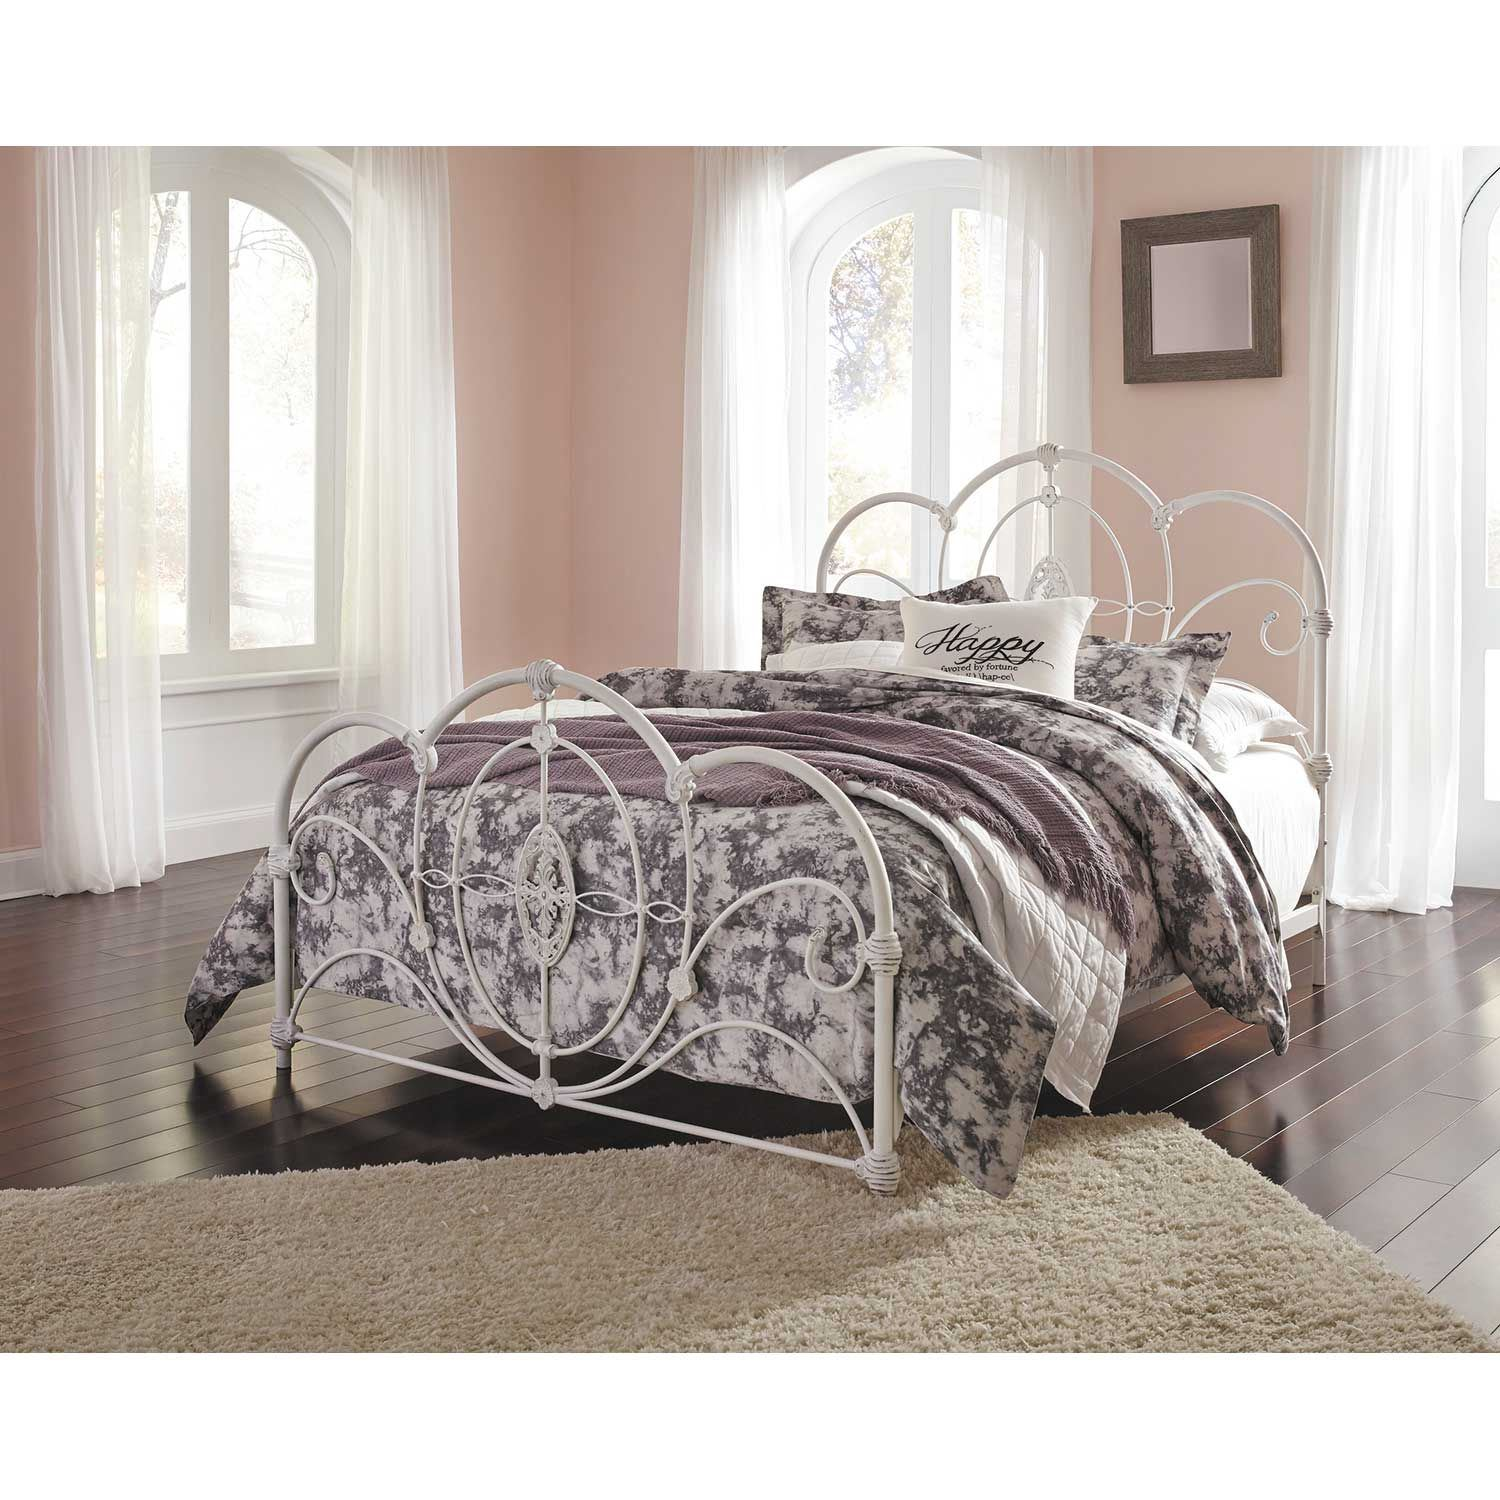 Loriday Queen Size Metal Bed B107 Qbed Ashley Furniture Afw